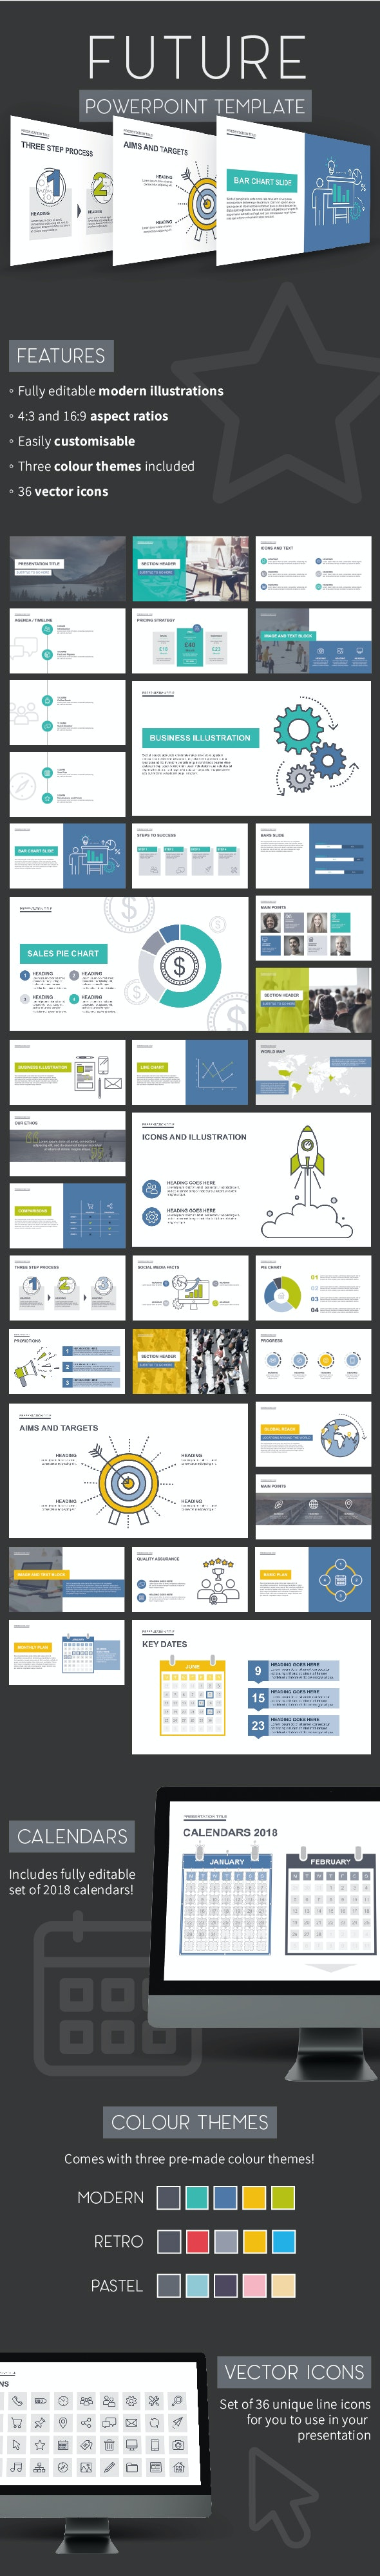 Future PowerPoint Template - Creative PowerPoint Templates